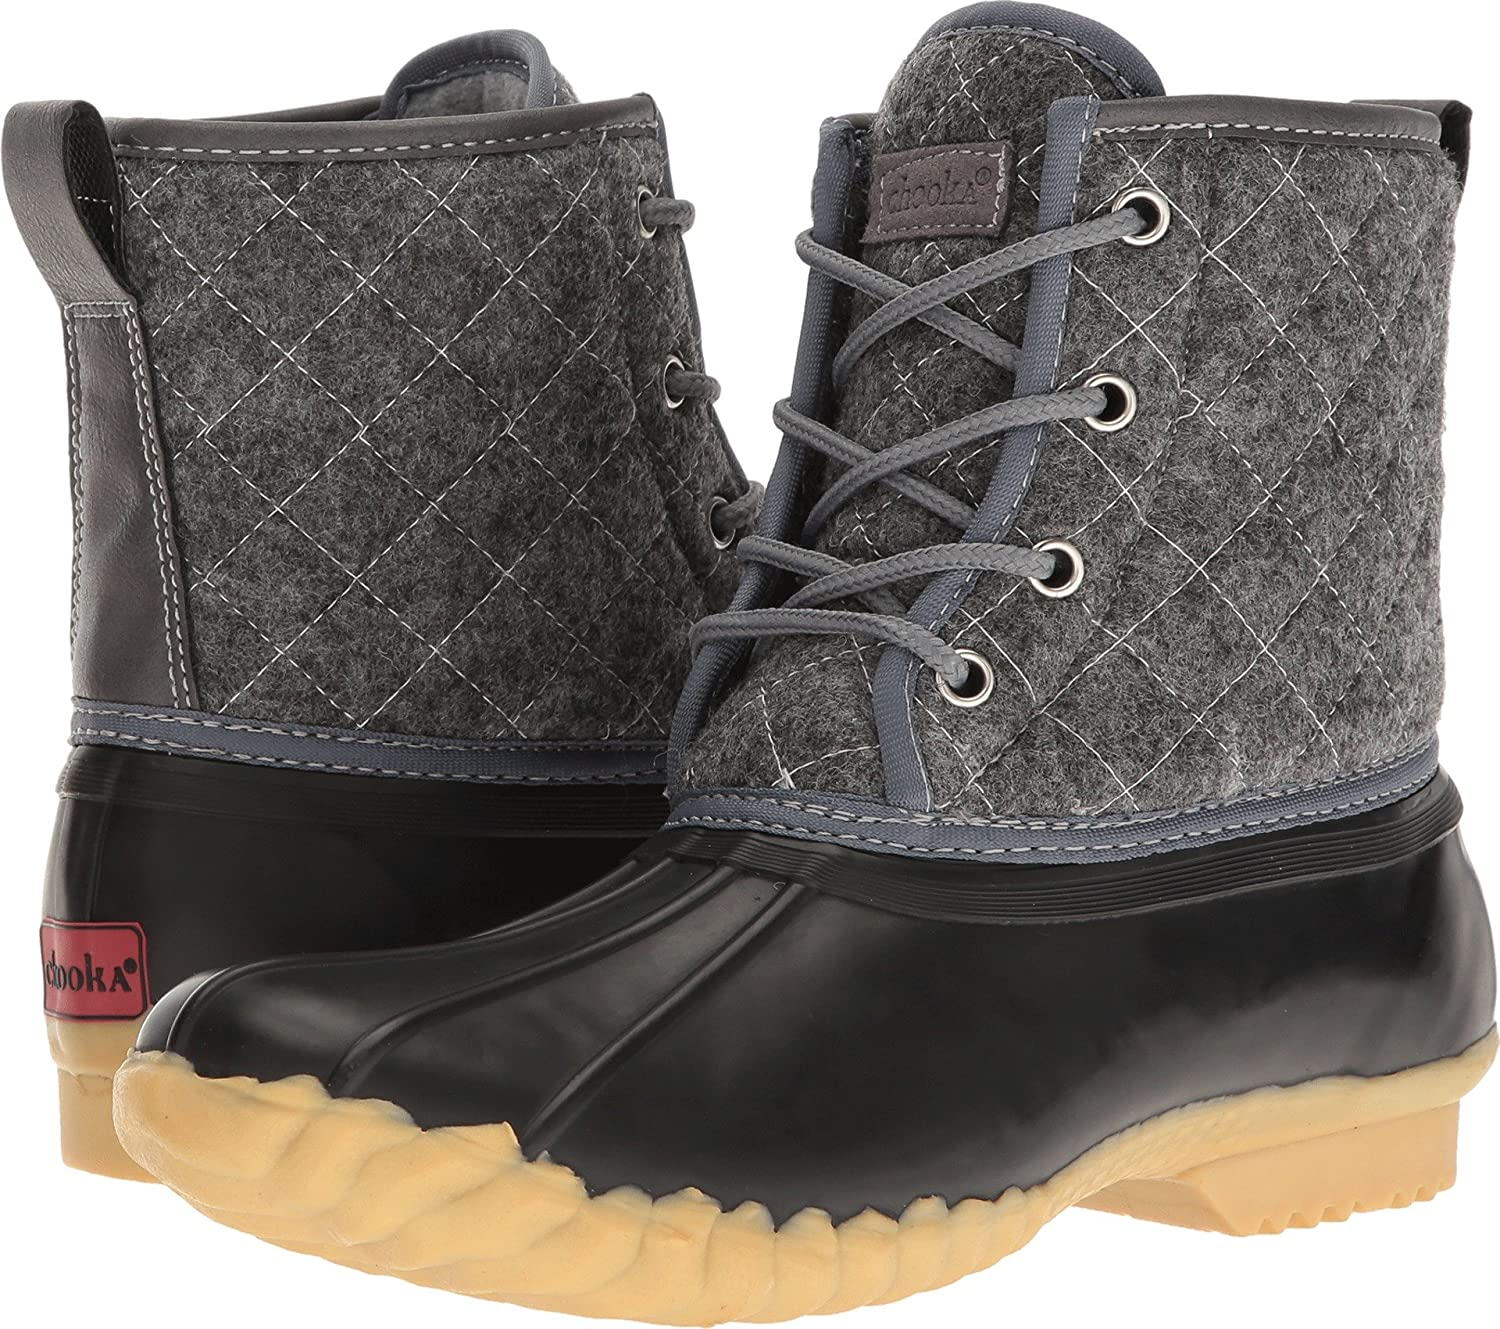 e71ac6617ff Chooka Womens Eastlake Quilted Duck Boot Black Size  M US  Amazon.co.uk   Shoes   Bags